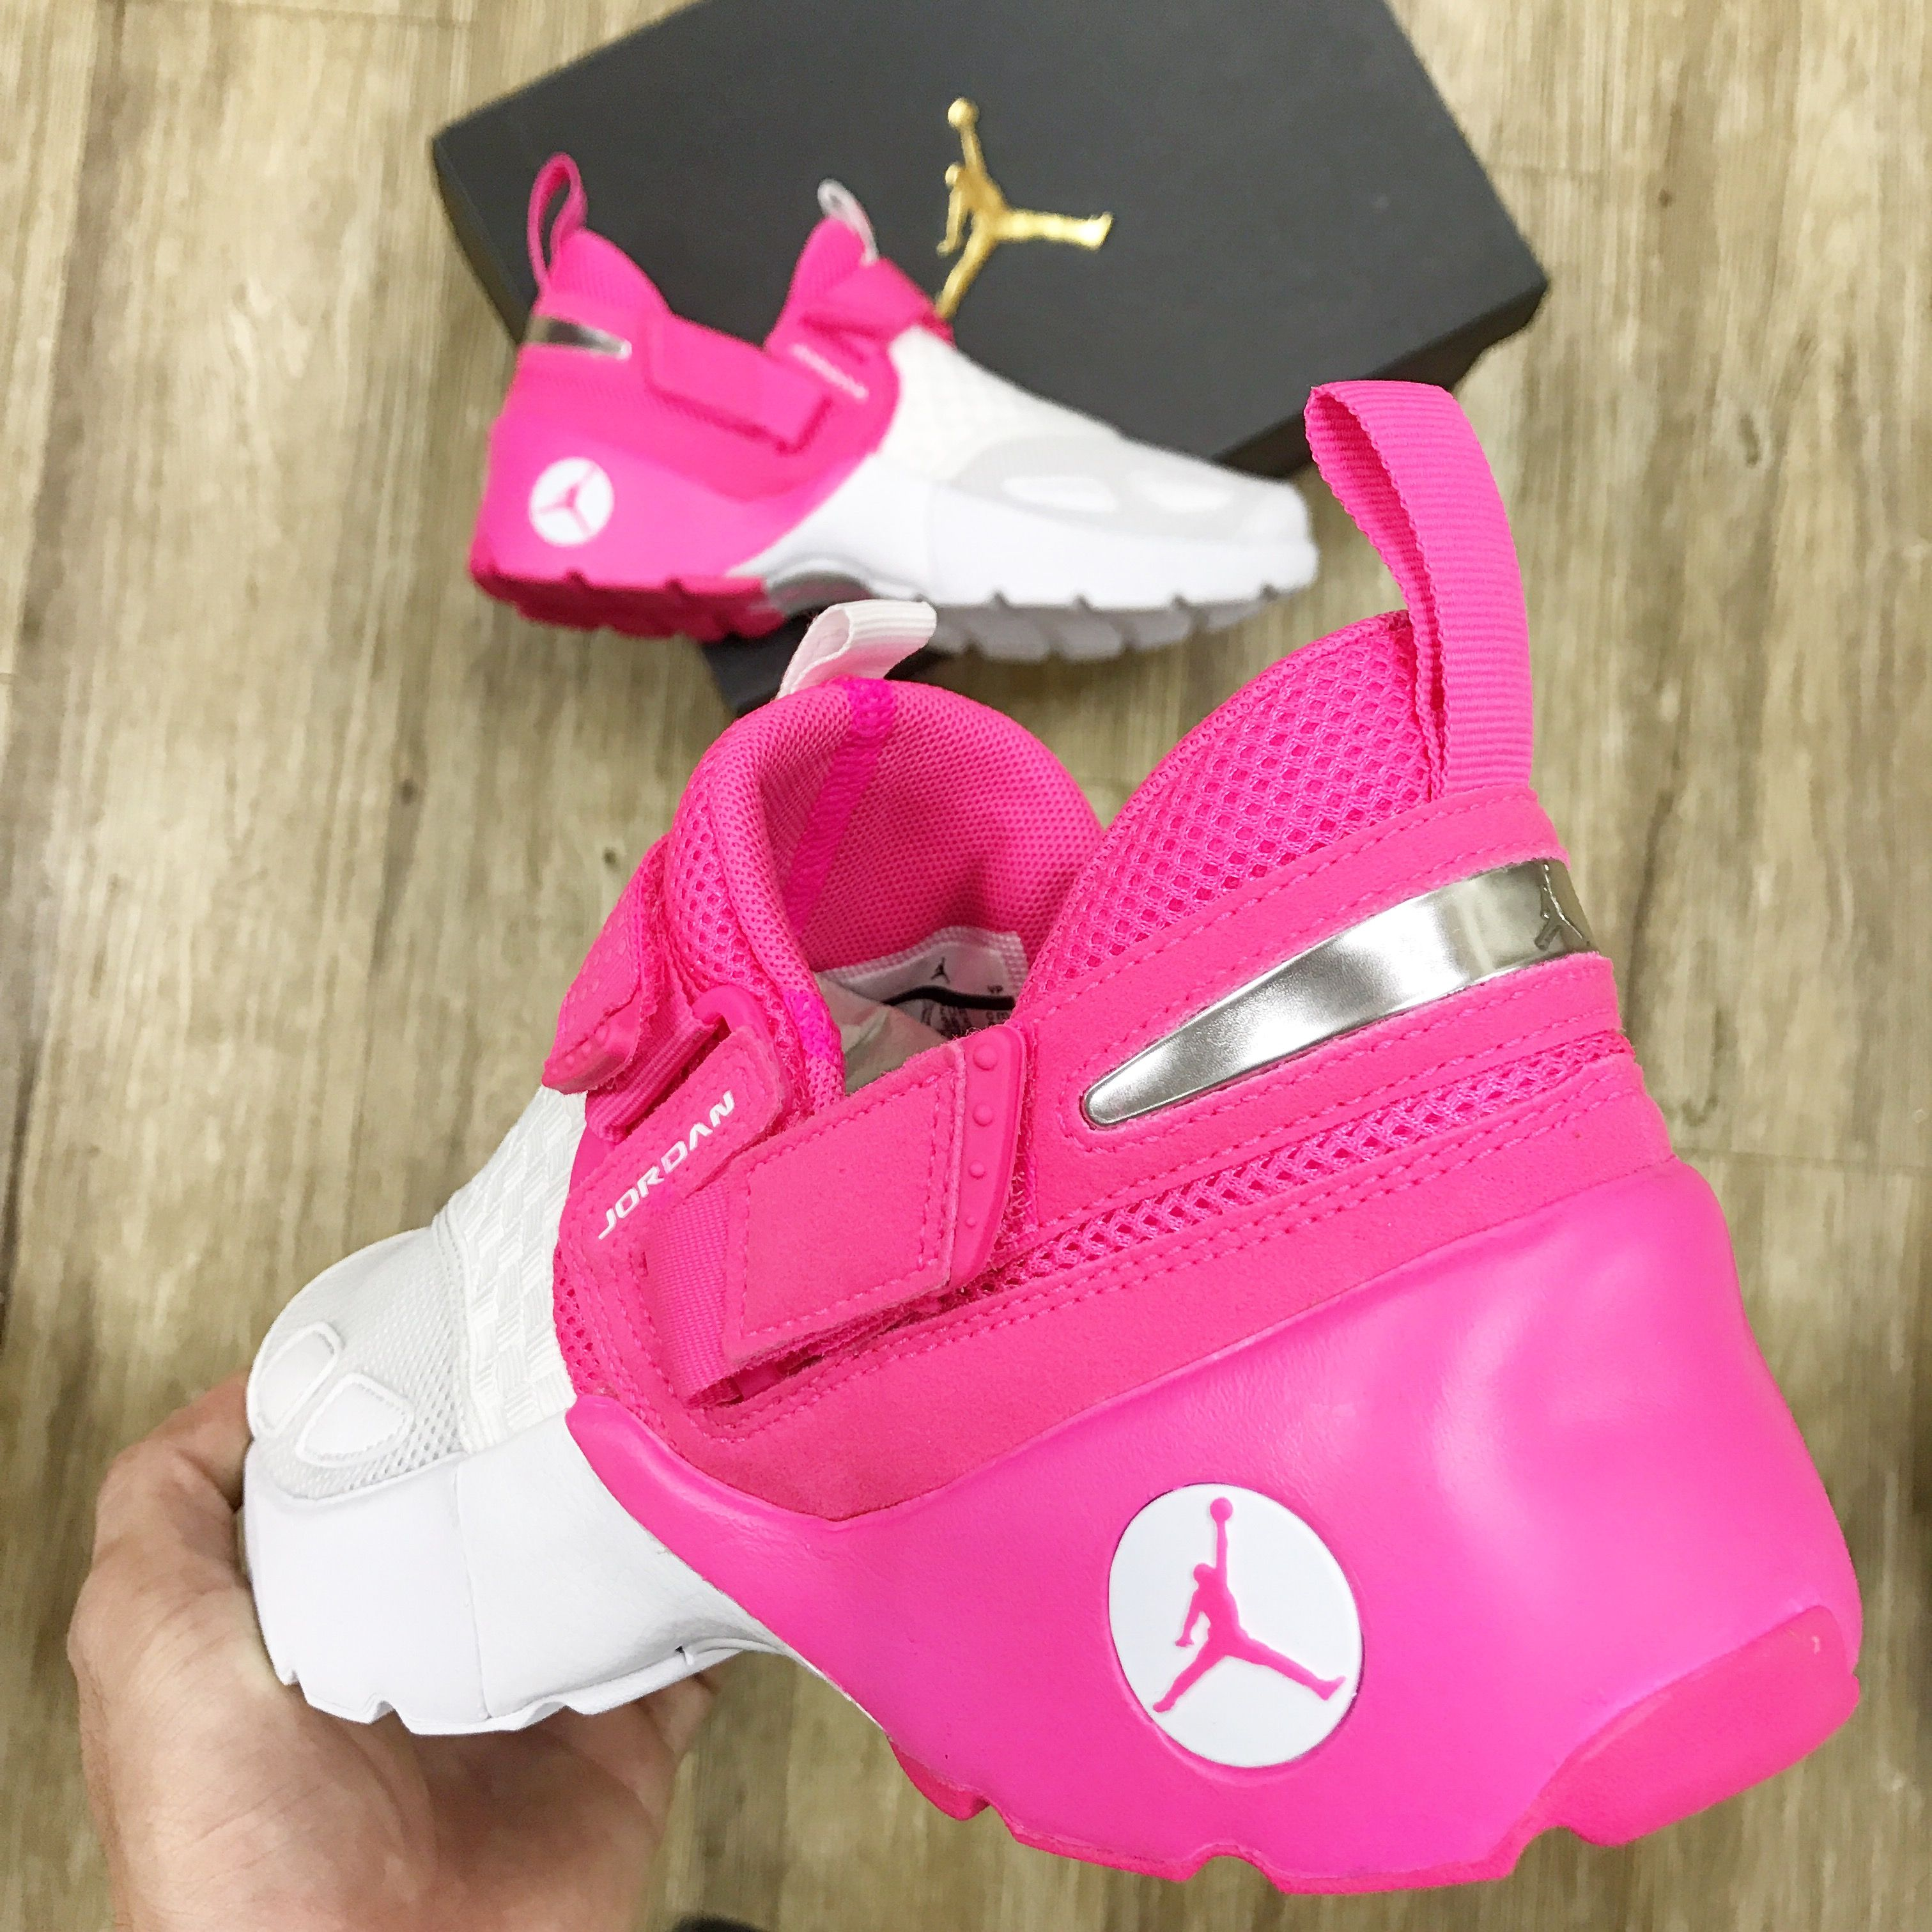 6a8aa2b35d4a Girls can have the very sweet summer with this hyper pink trimmer. -- Nike  Jordan Trunner LX GS